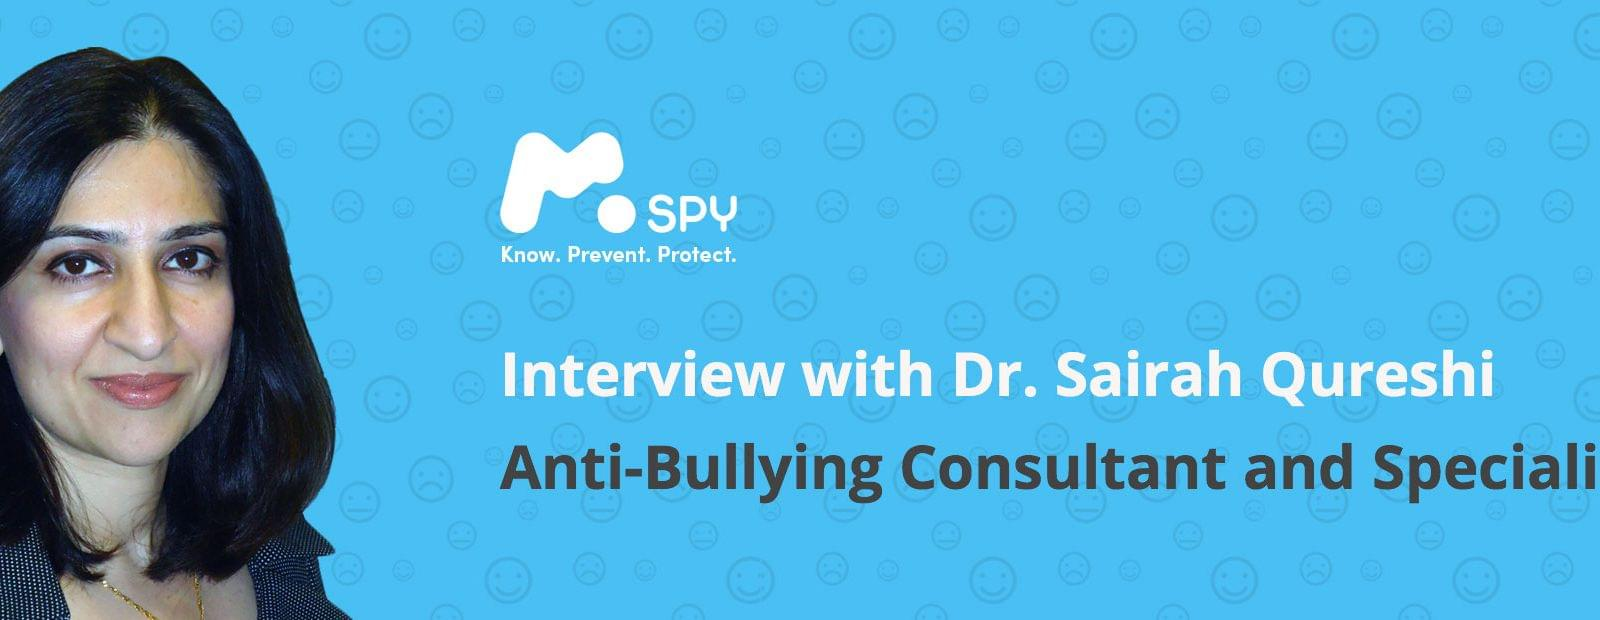 MSPY interview with Dr. Sairah Qureshi, Anti-Bullying Consultant and Specialist